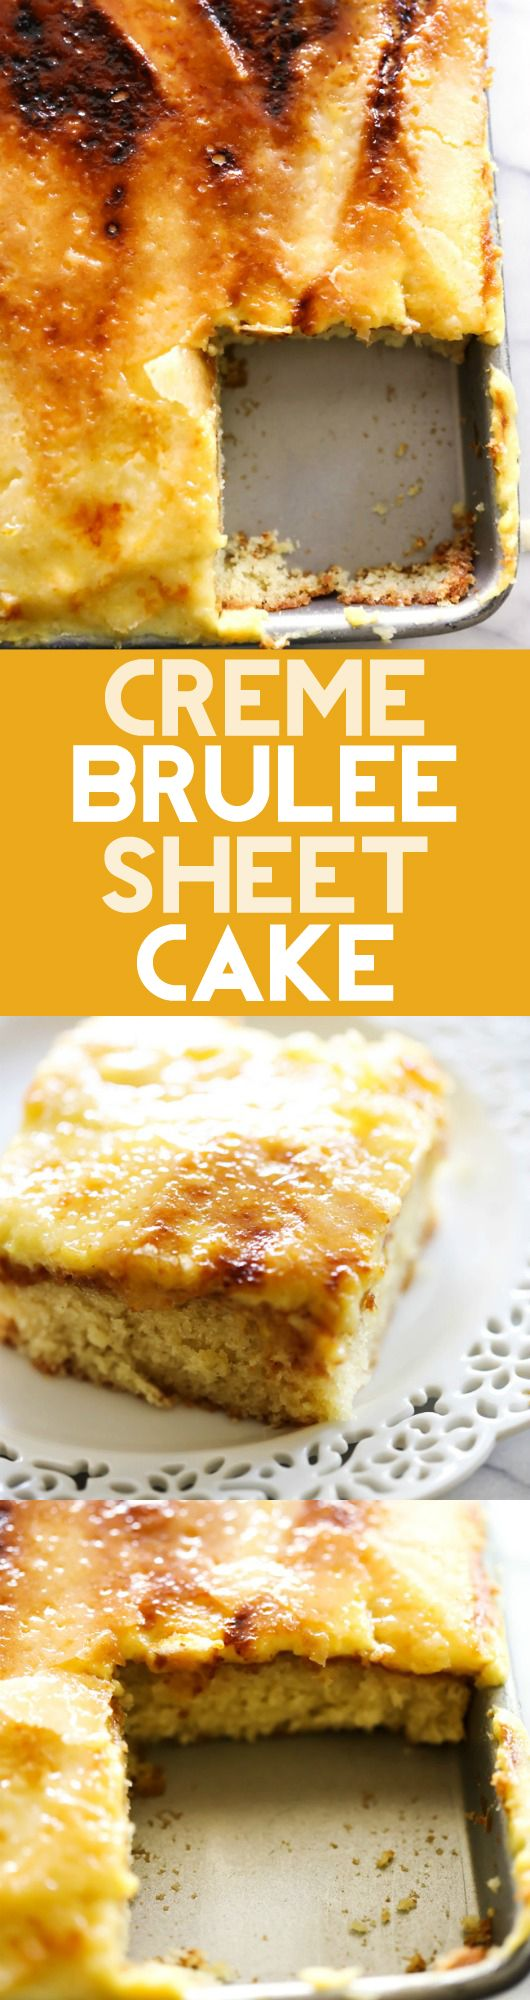 This Creme Brûlée Sheet Cake will be one of the best things you EVER eat! It is a vanilla bean cake topped with vanilla bean custard that has that one of a kind crisp and cracking caramelized creme brûlée sugar shell topping. This dessert is a complete show stopper!